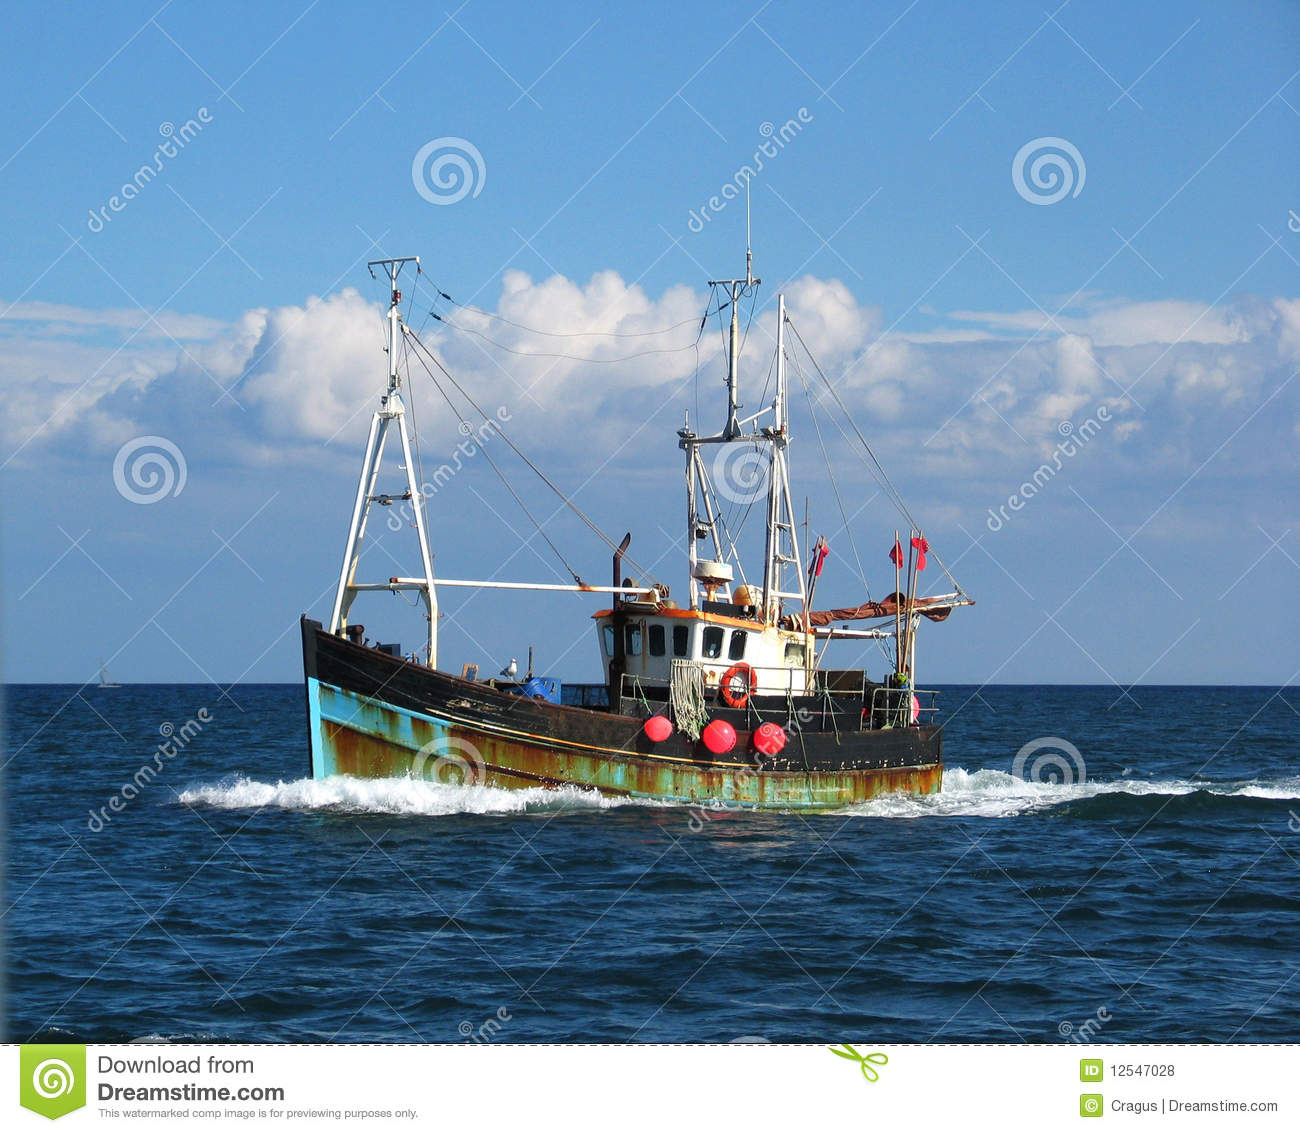 Fishing Trawler Royalty Free Stock Photos - Image: 12547028